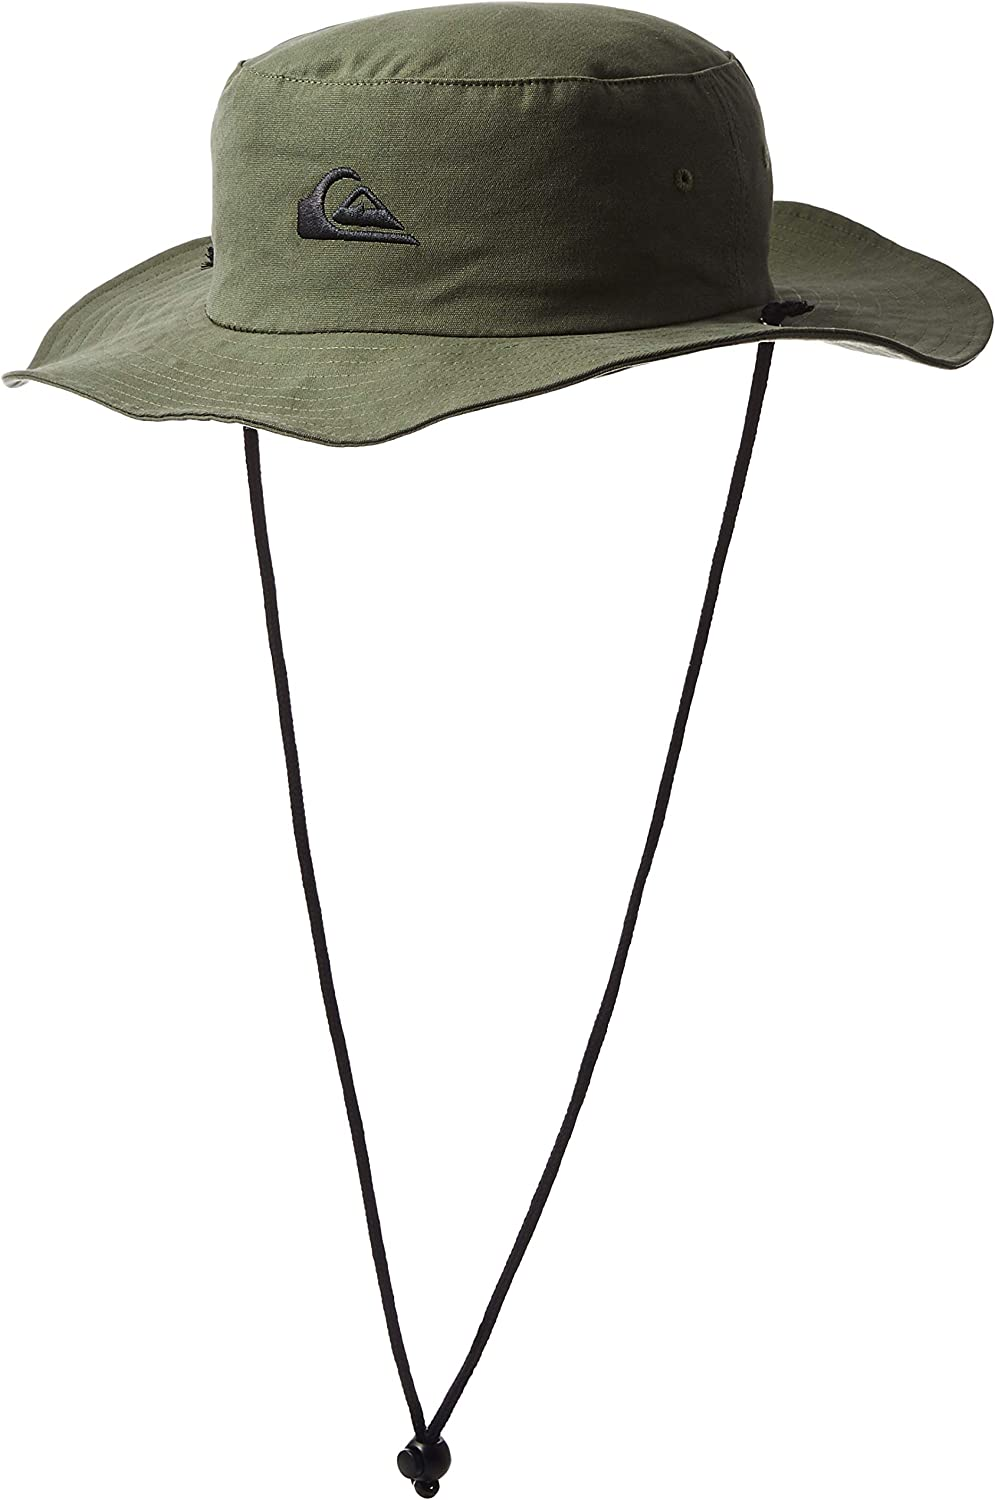 Quiksilver Men's Bushmaster Sun Protection Floppy Bucket Hat